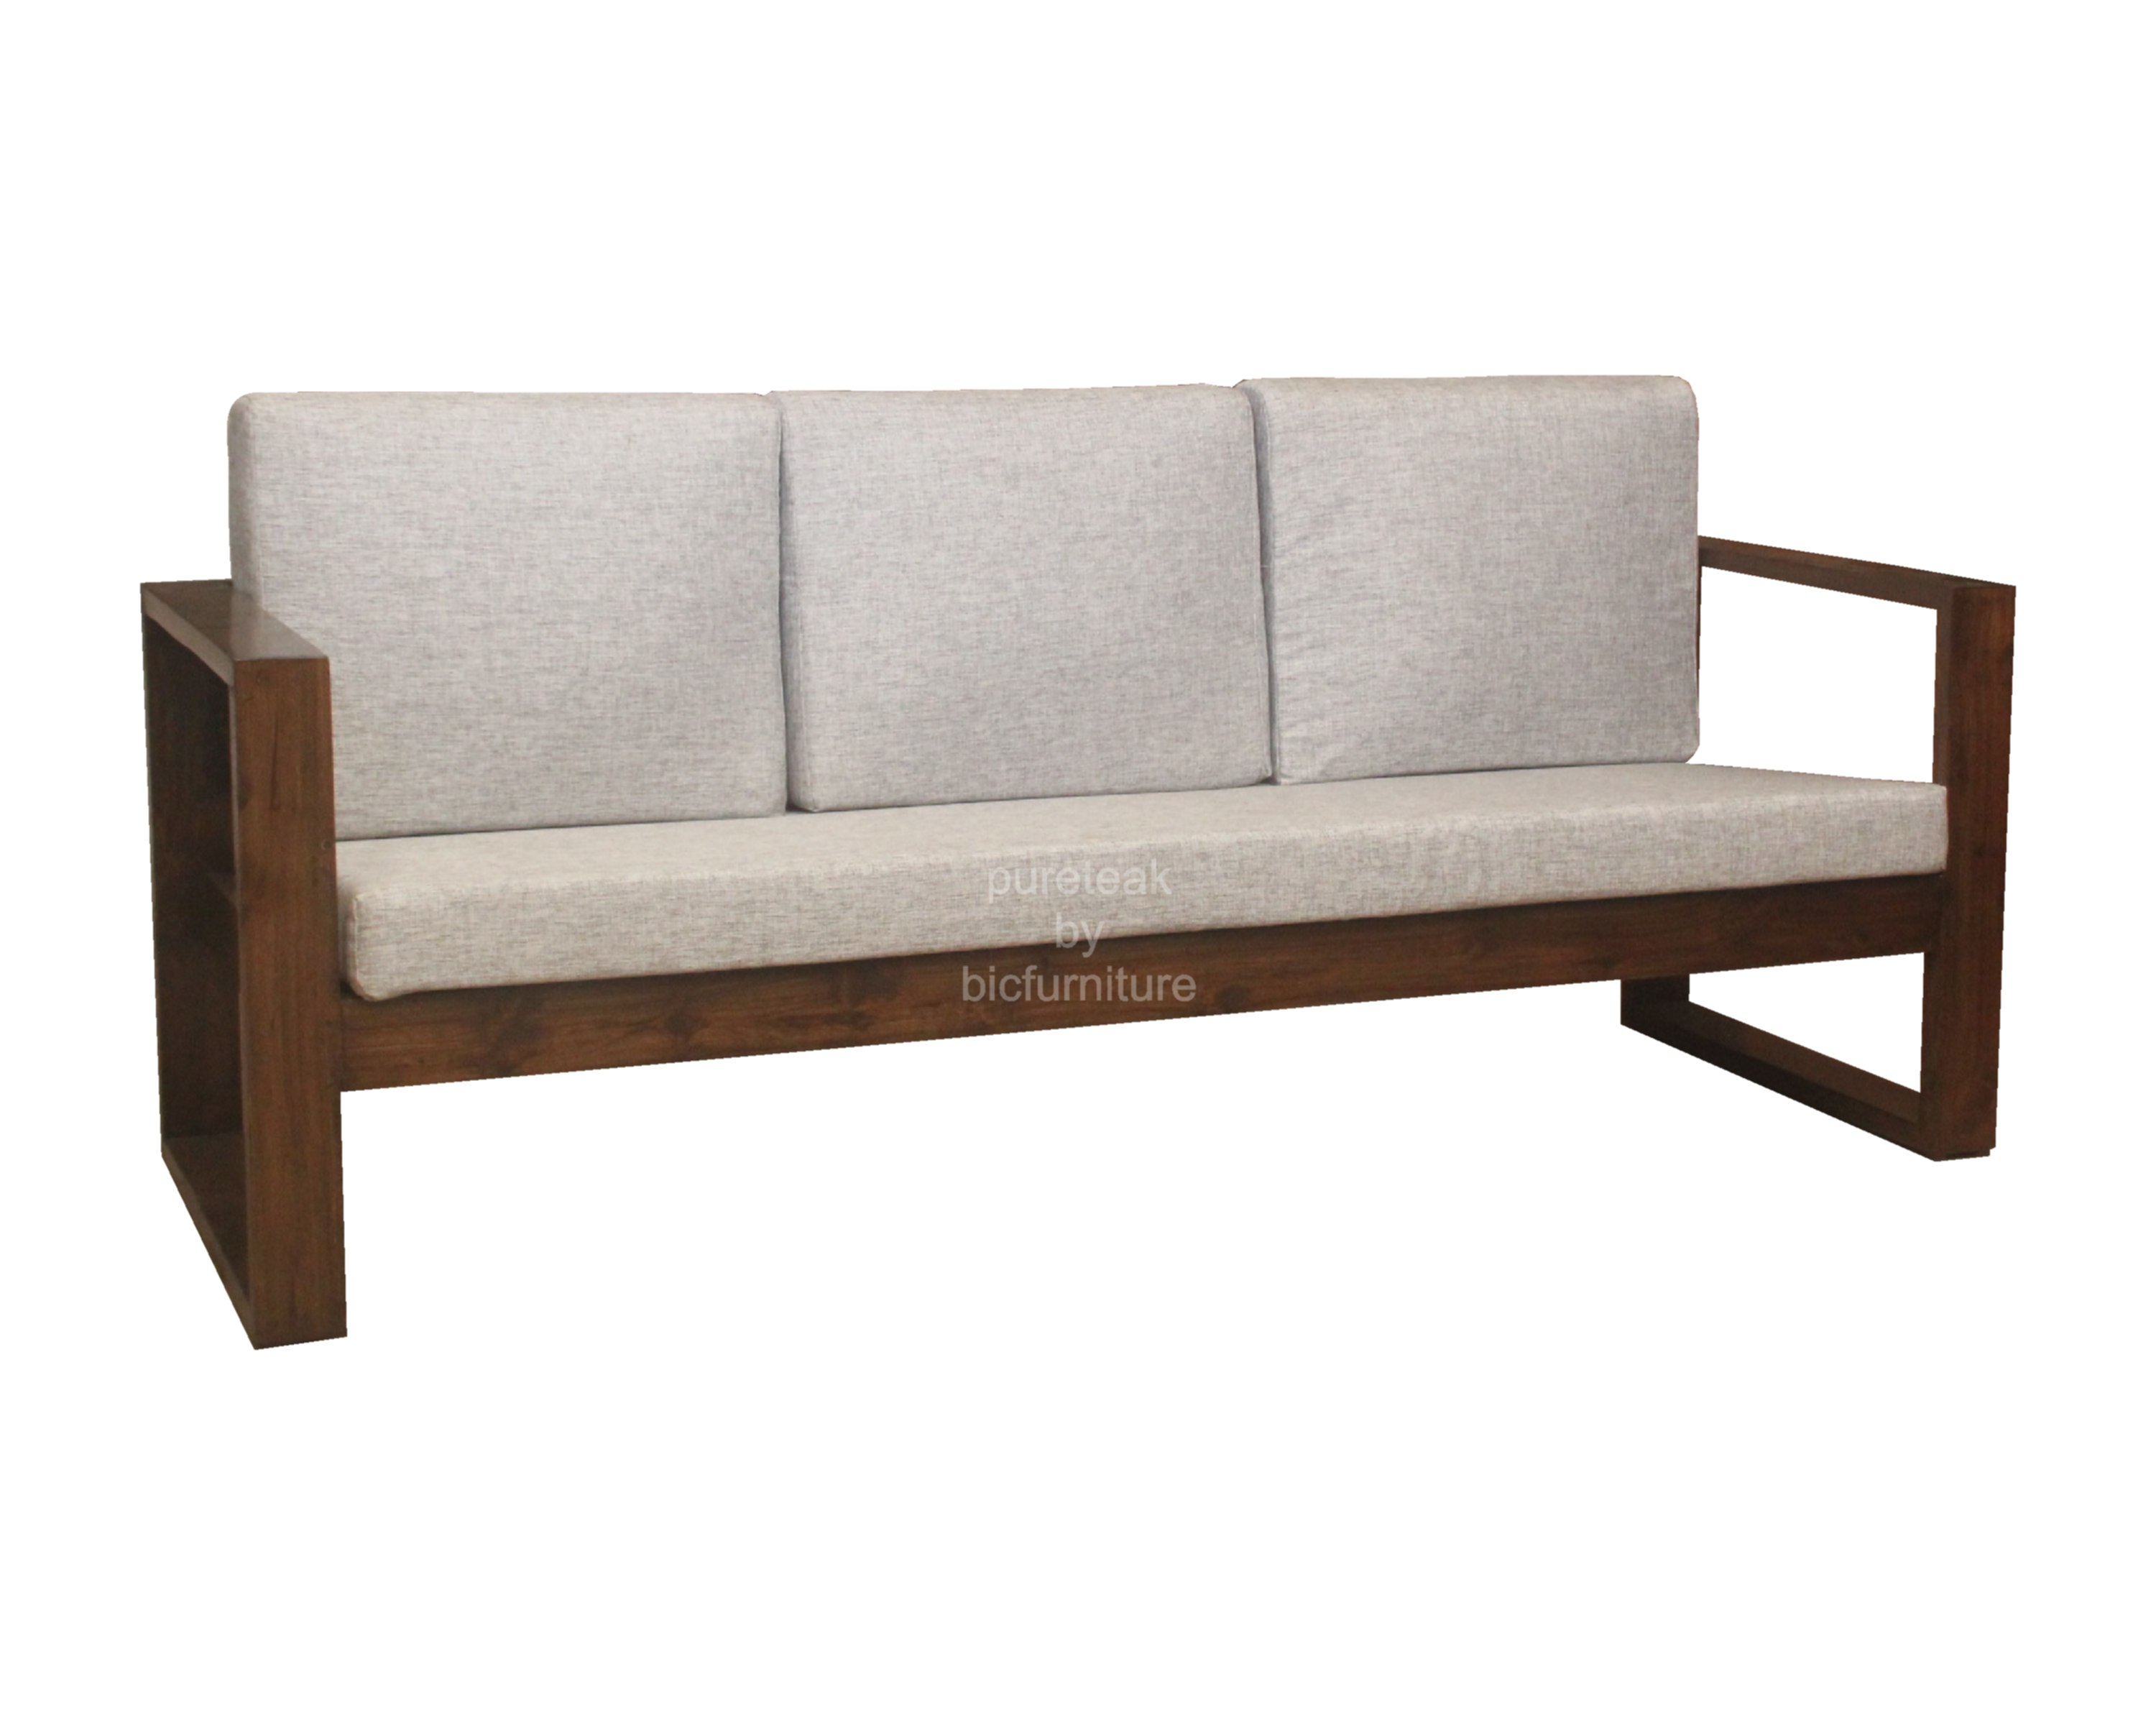 Furniture Design Details wooden sofa set in simple design (ws 67) details | bic furniture india